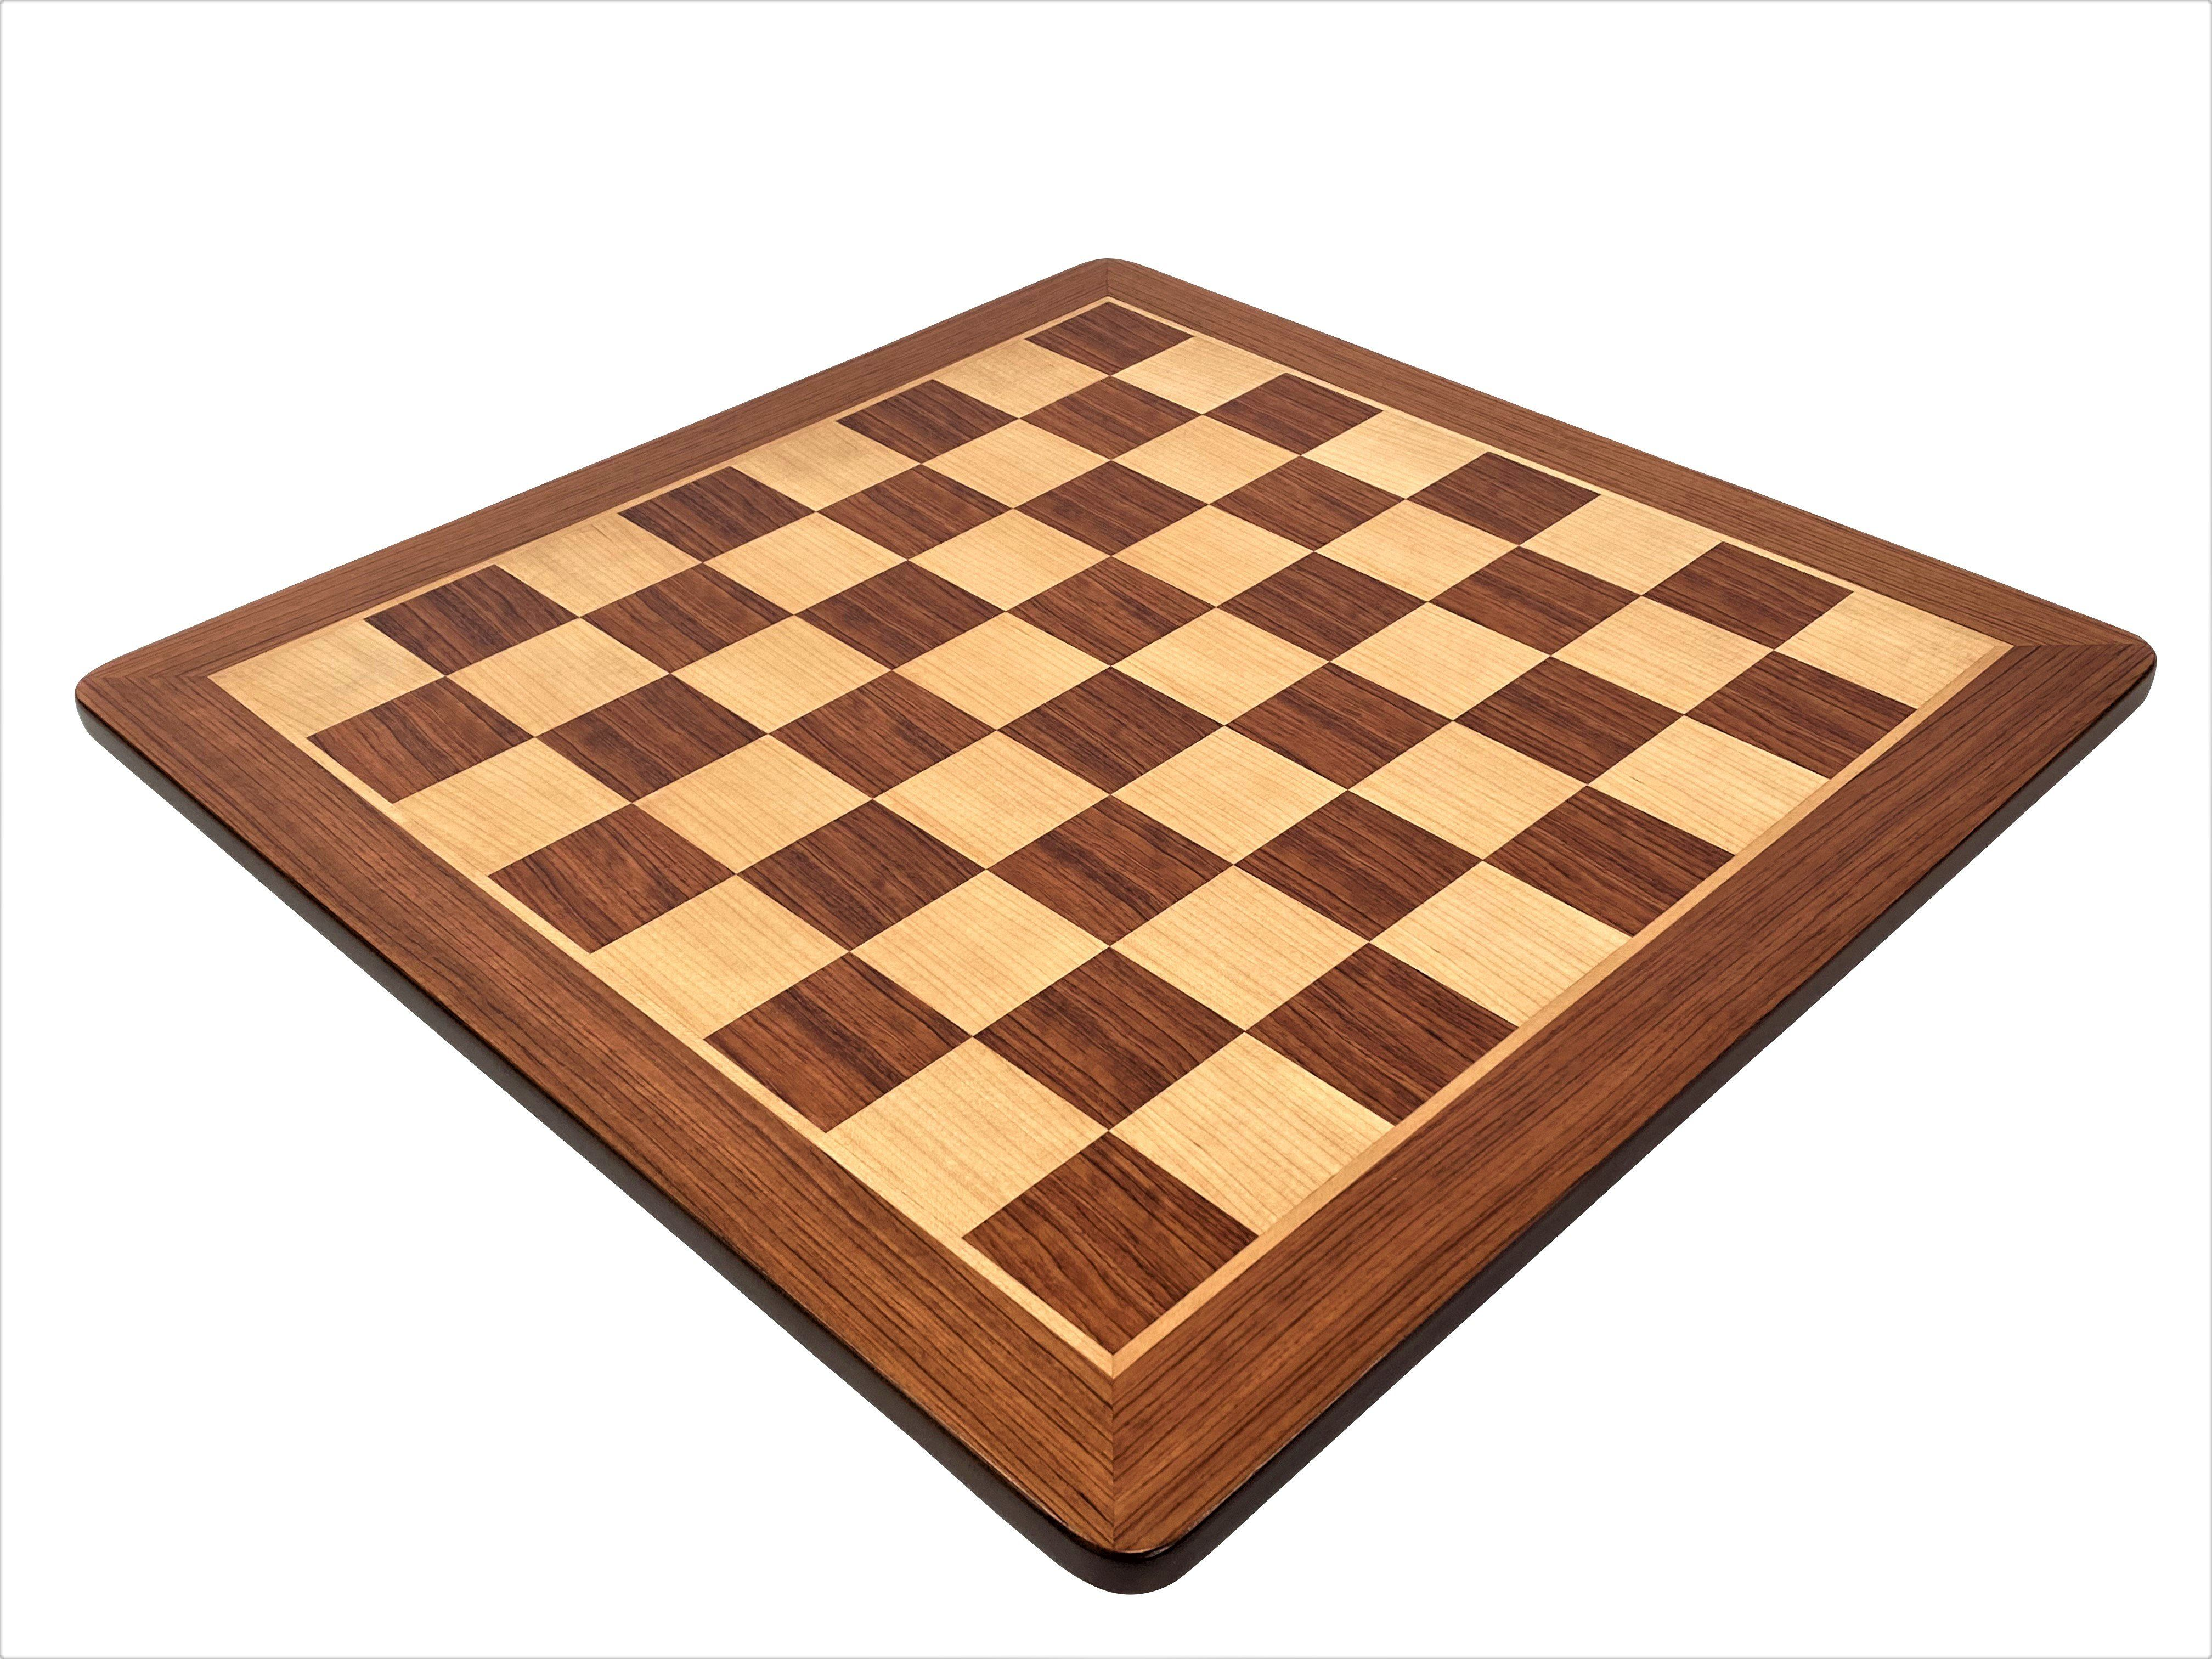 19 In 2020 Chess Board Wood Chess Board Chess